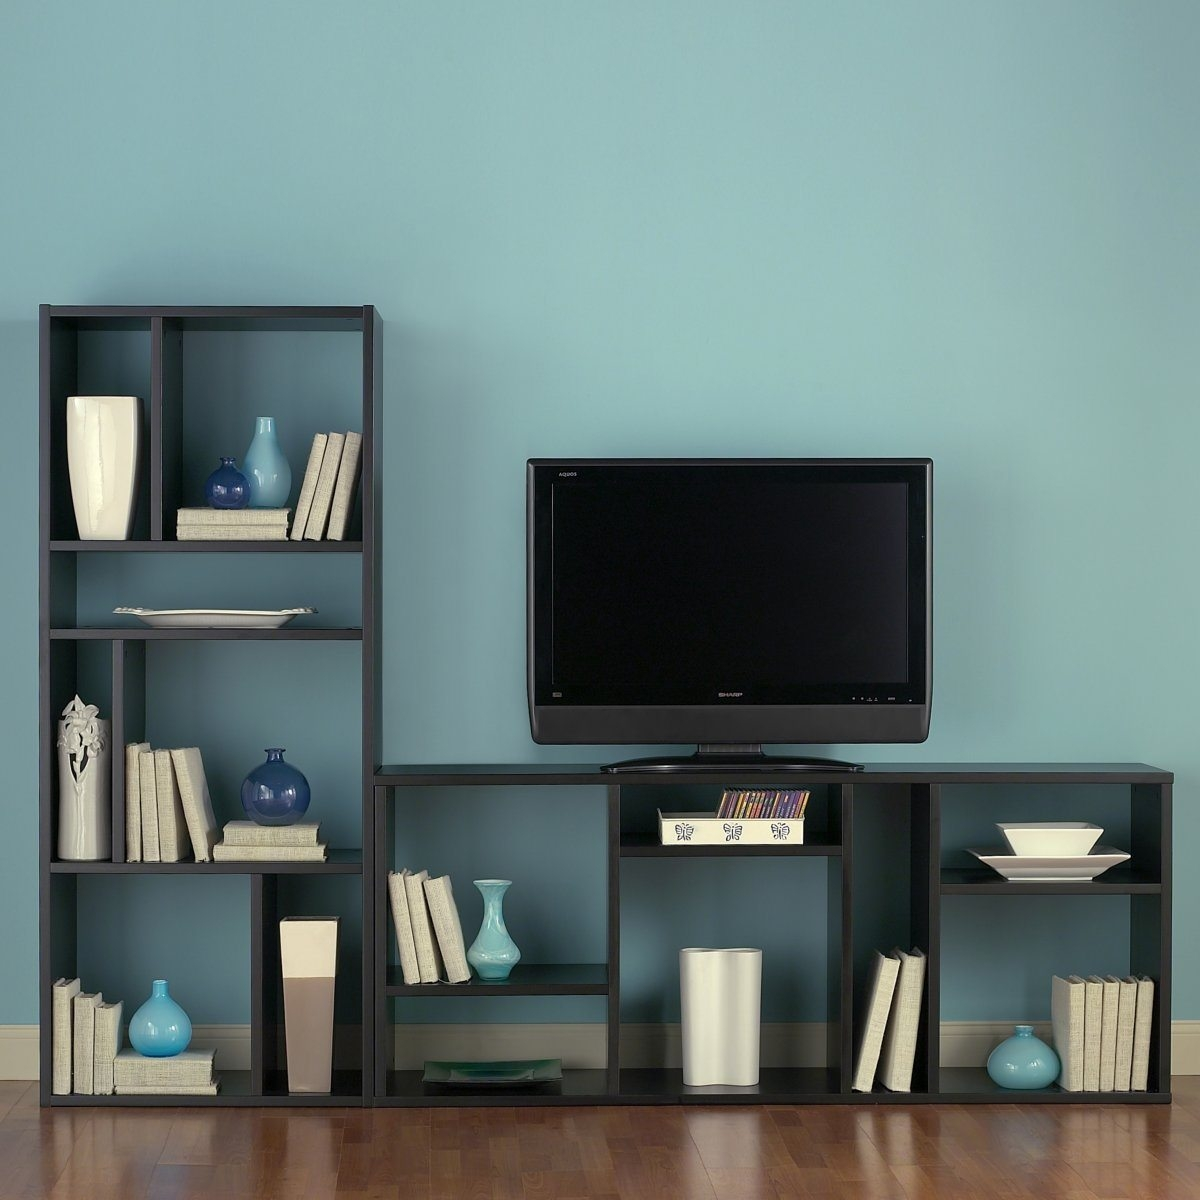 Preferred 15 Best Ideas of Bookshelf Tv PI87